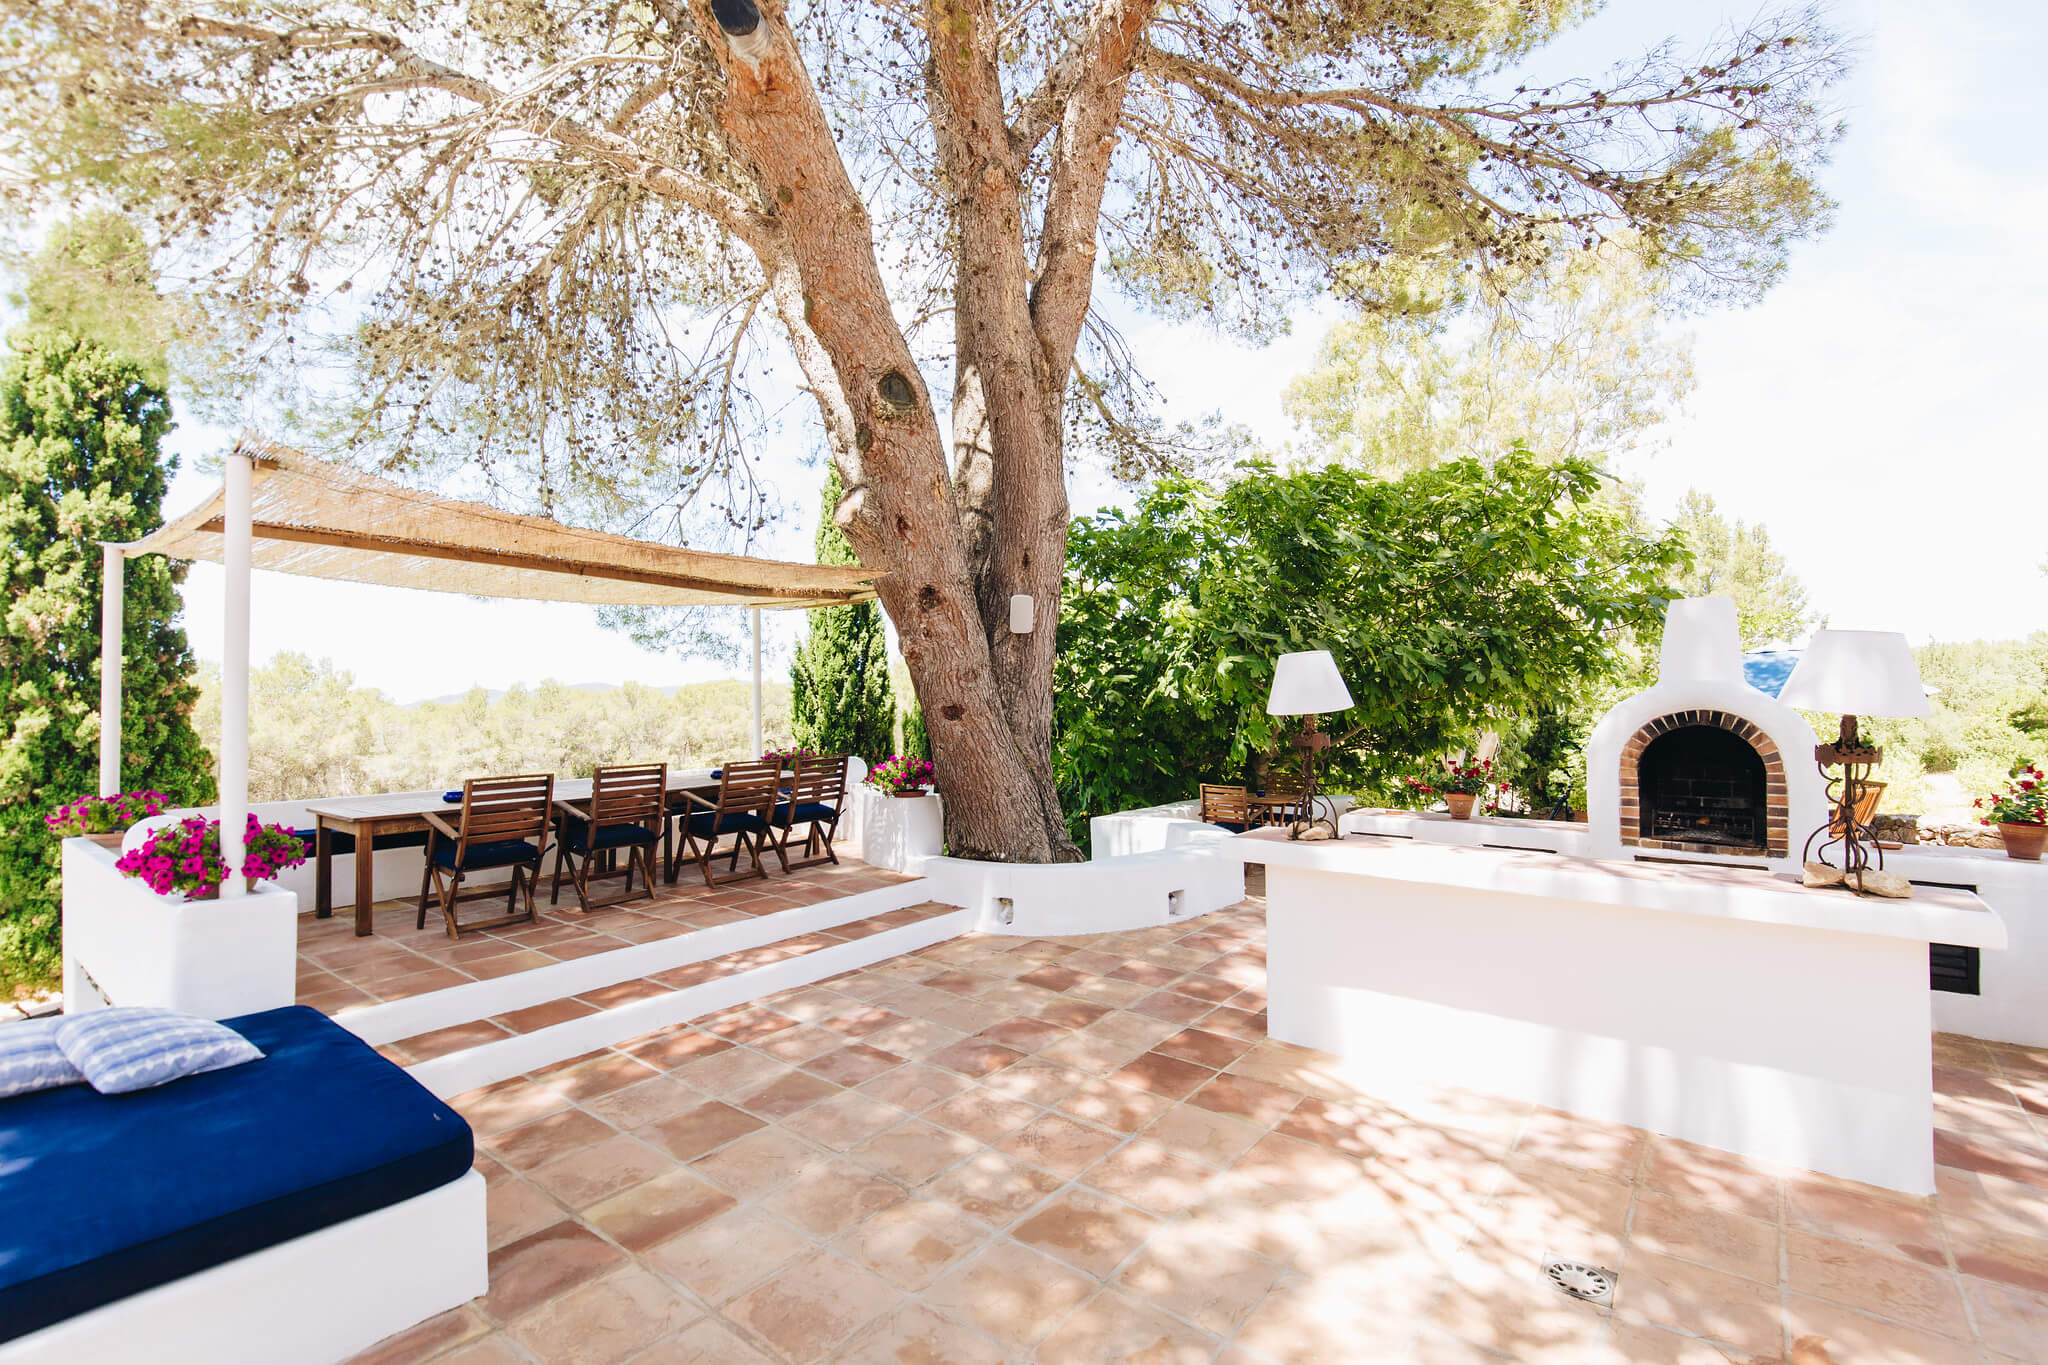 https://www.white-ibiza.com/wp-content/uploads/2020/05/white-ibiza-villas-can-amelida-exterior-outside-kitchen-dining.jpg